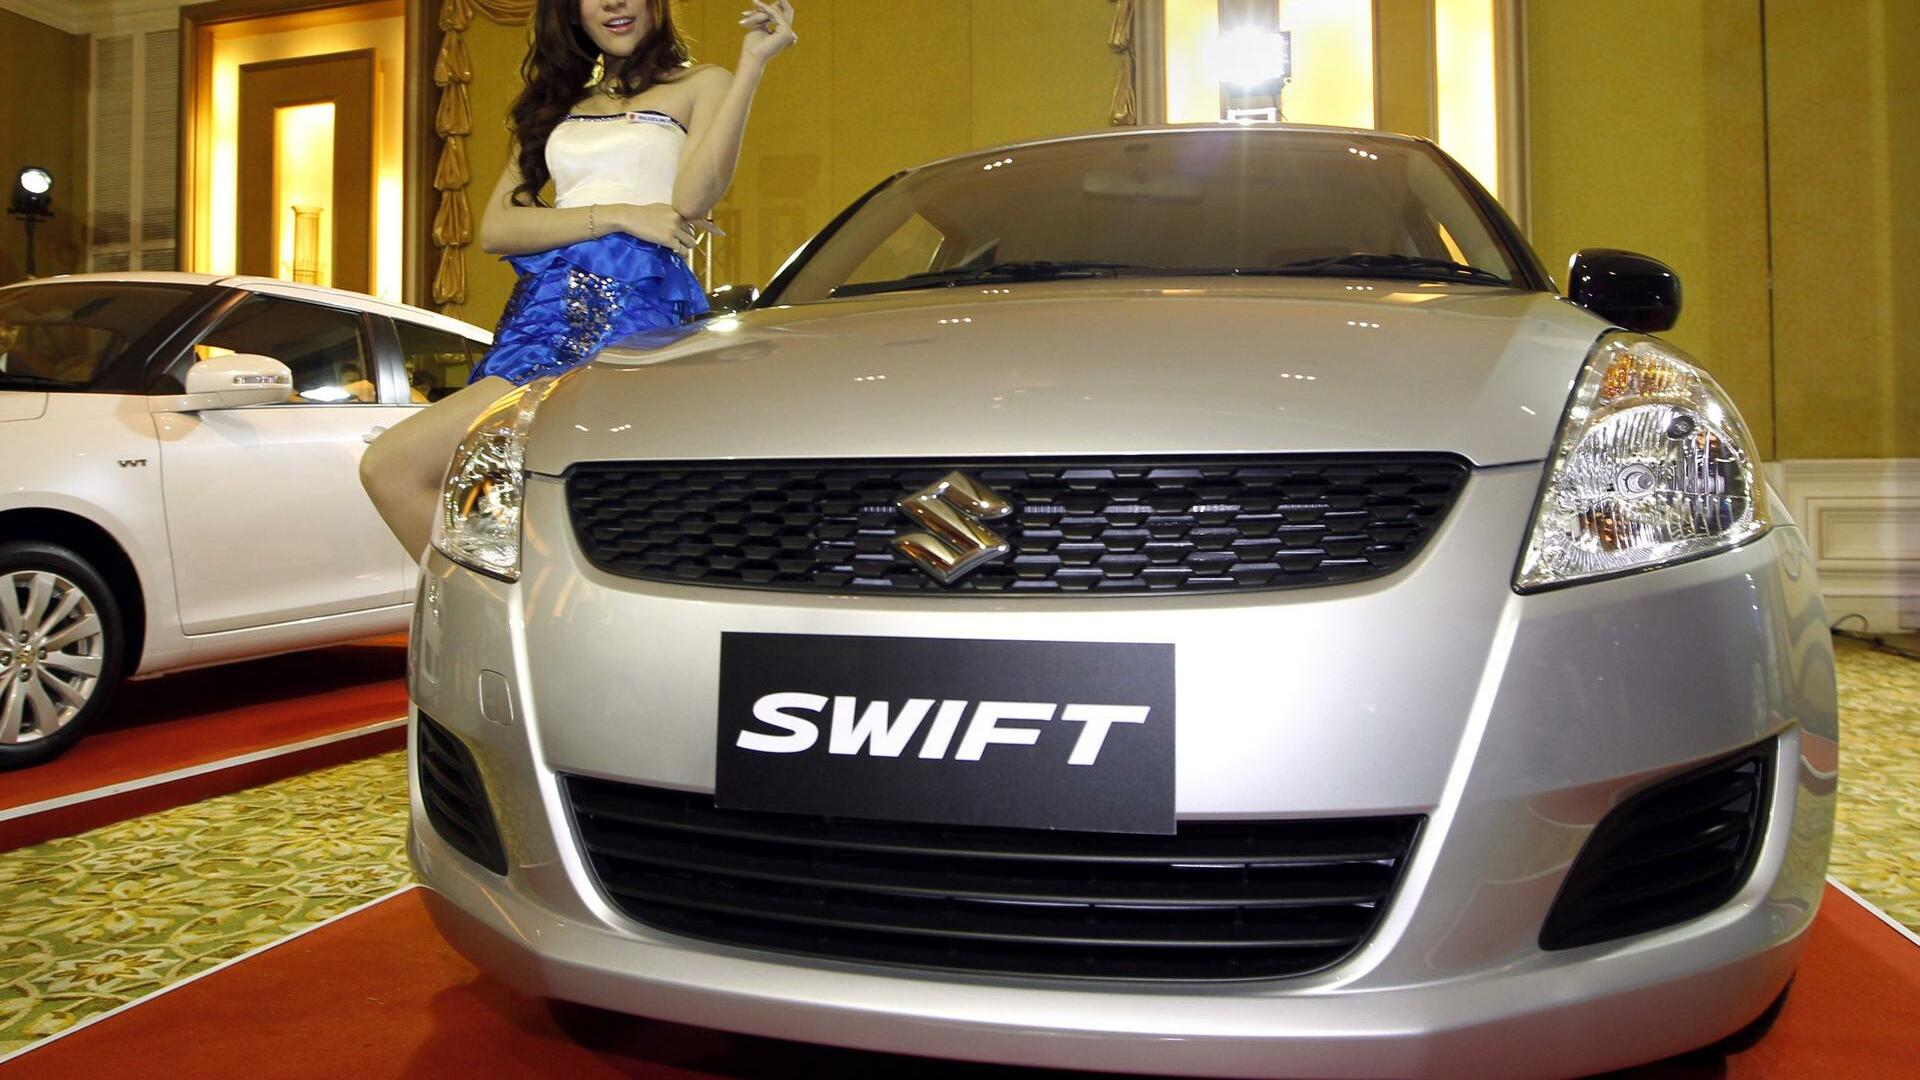 A Thai model pose with the new eco-car Suzuki Swift during a press conference Quelle: dpa